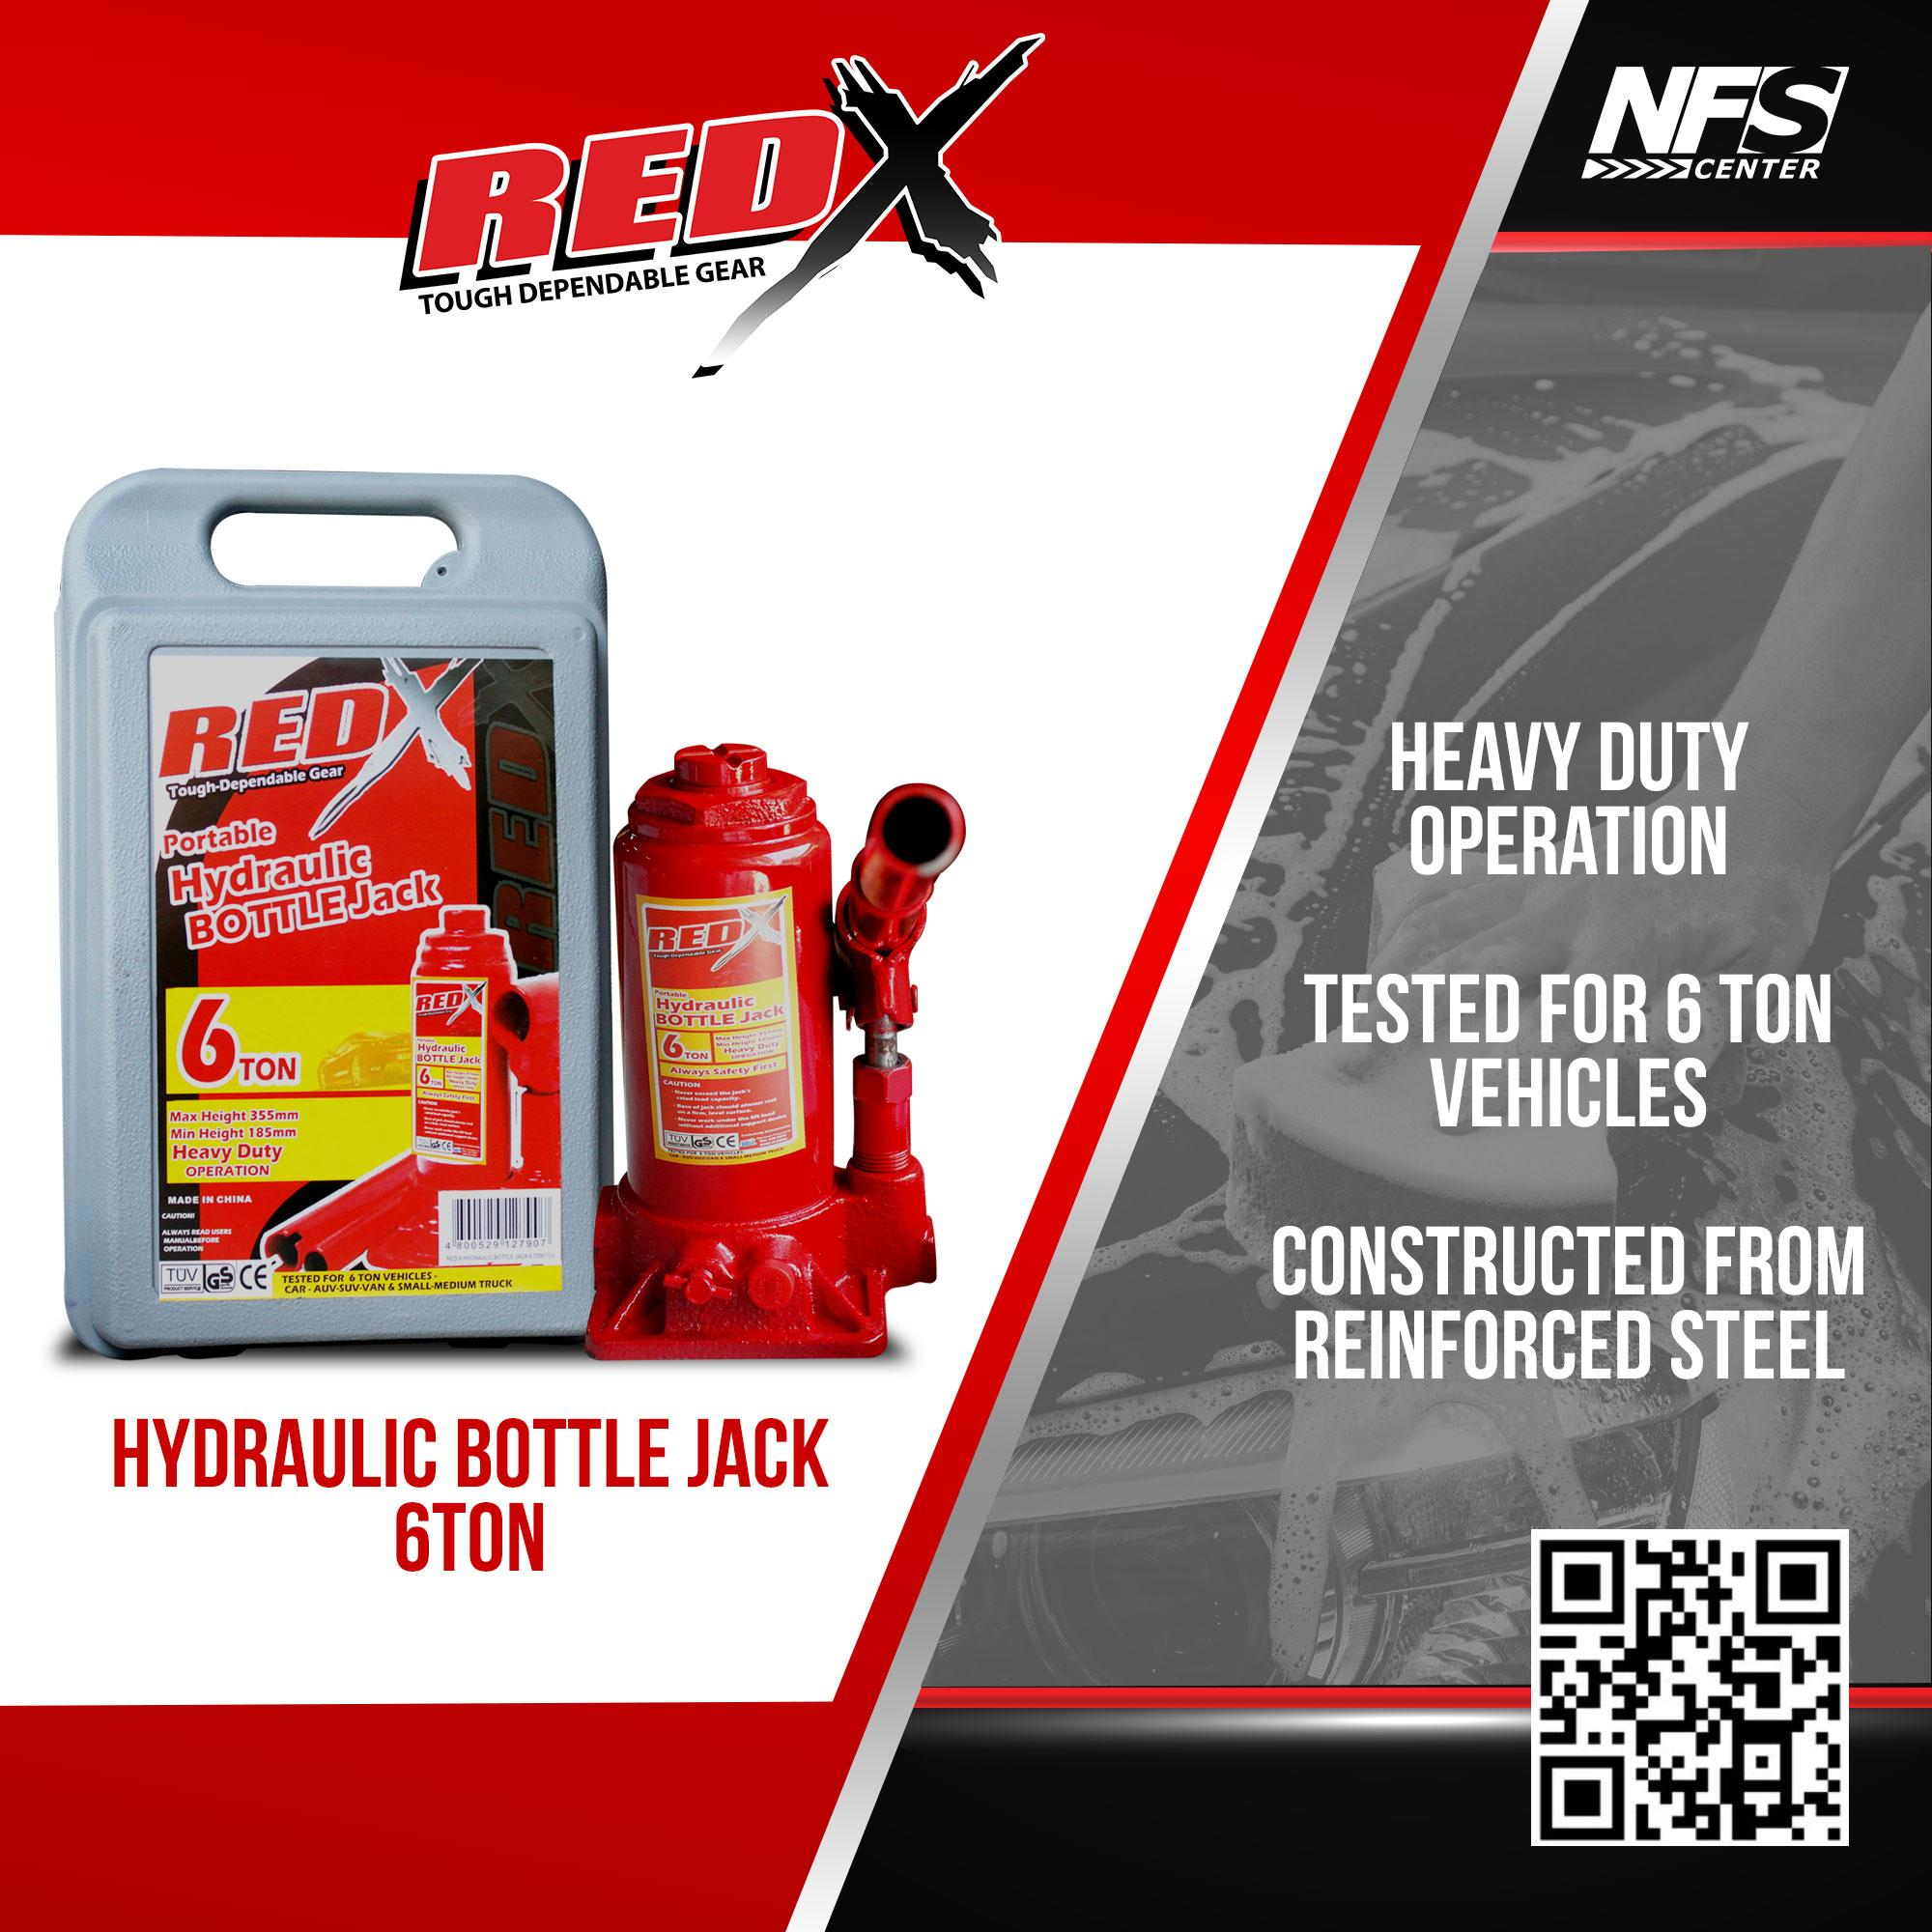 NFSC - Red X Hydraulic Bottle Jack 6Ton